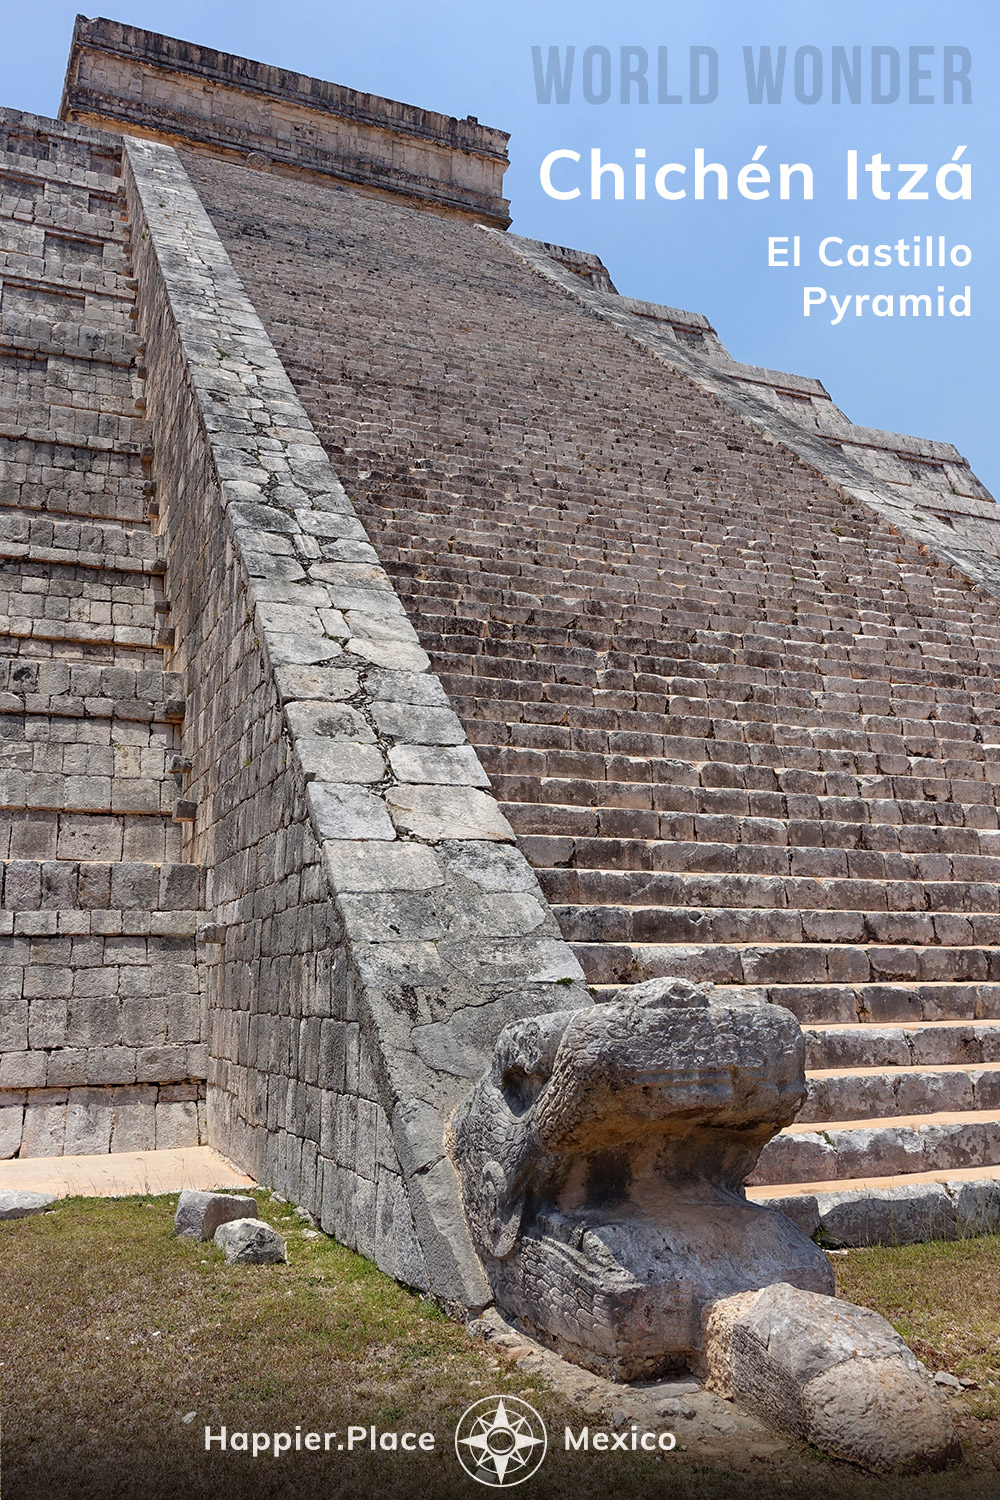 World Wonder El Castillo pyramid, Chichen Itza, Yucatan, Mexico, serpent head and stairs to Temple of Kukulcan, serpent deity, Happier Place